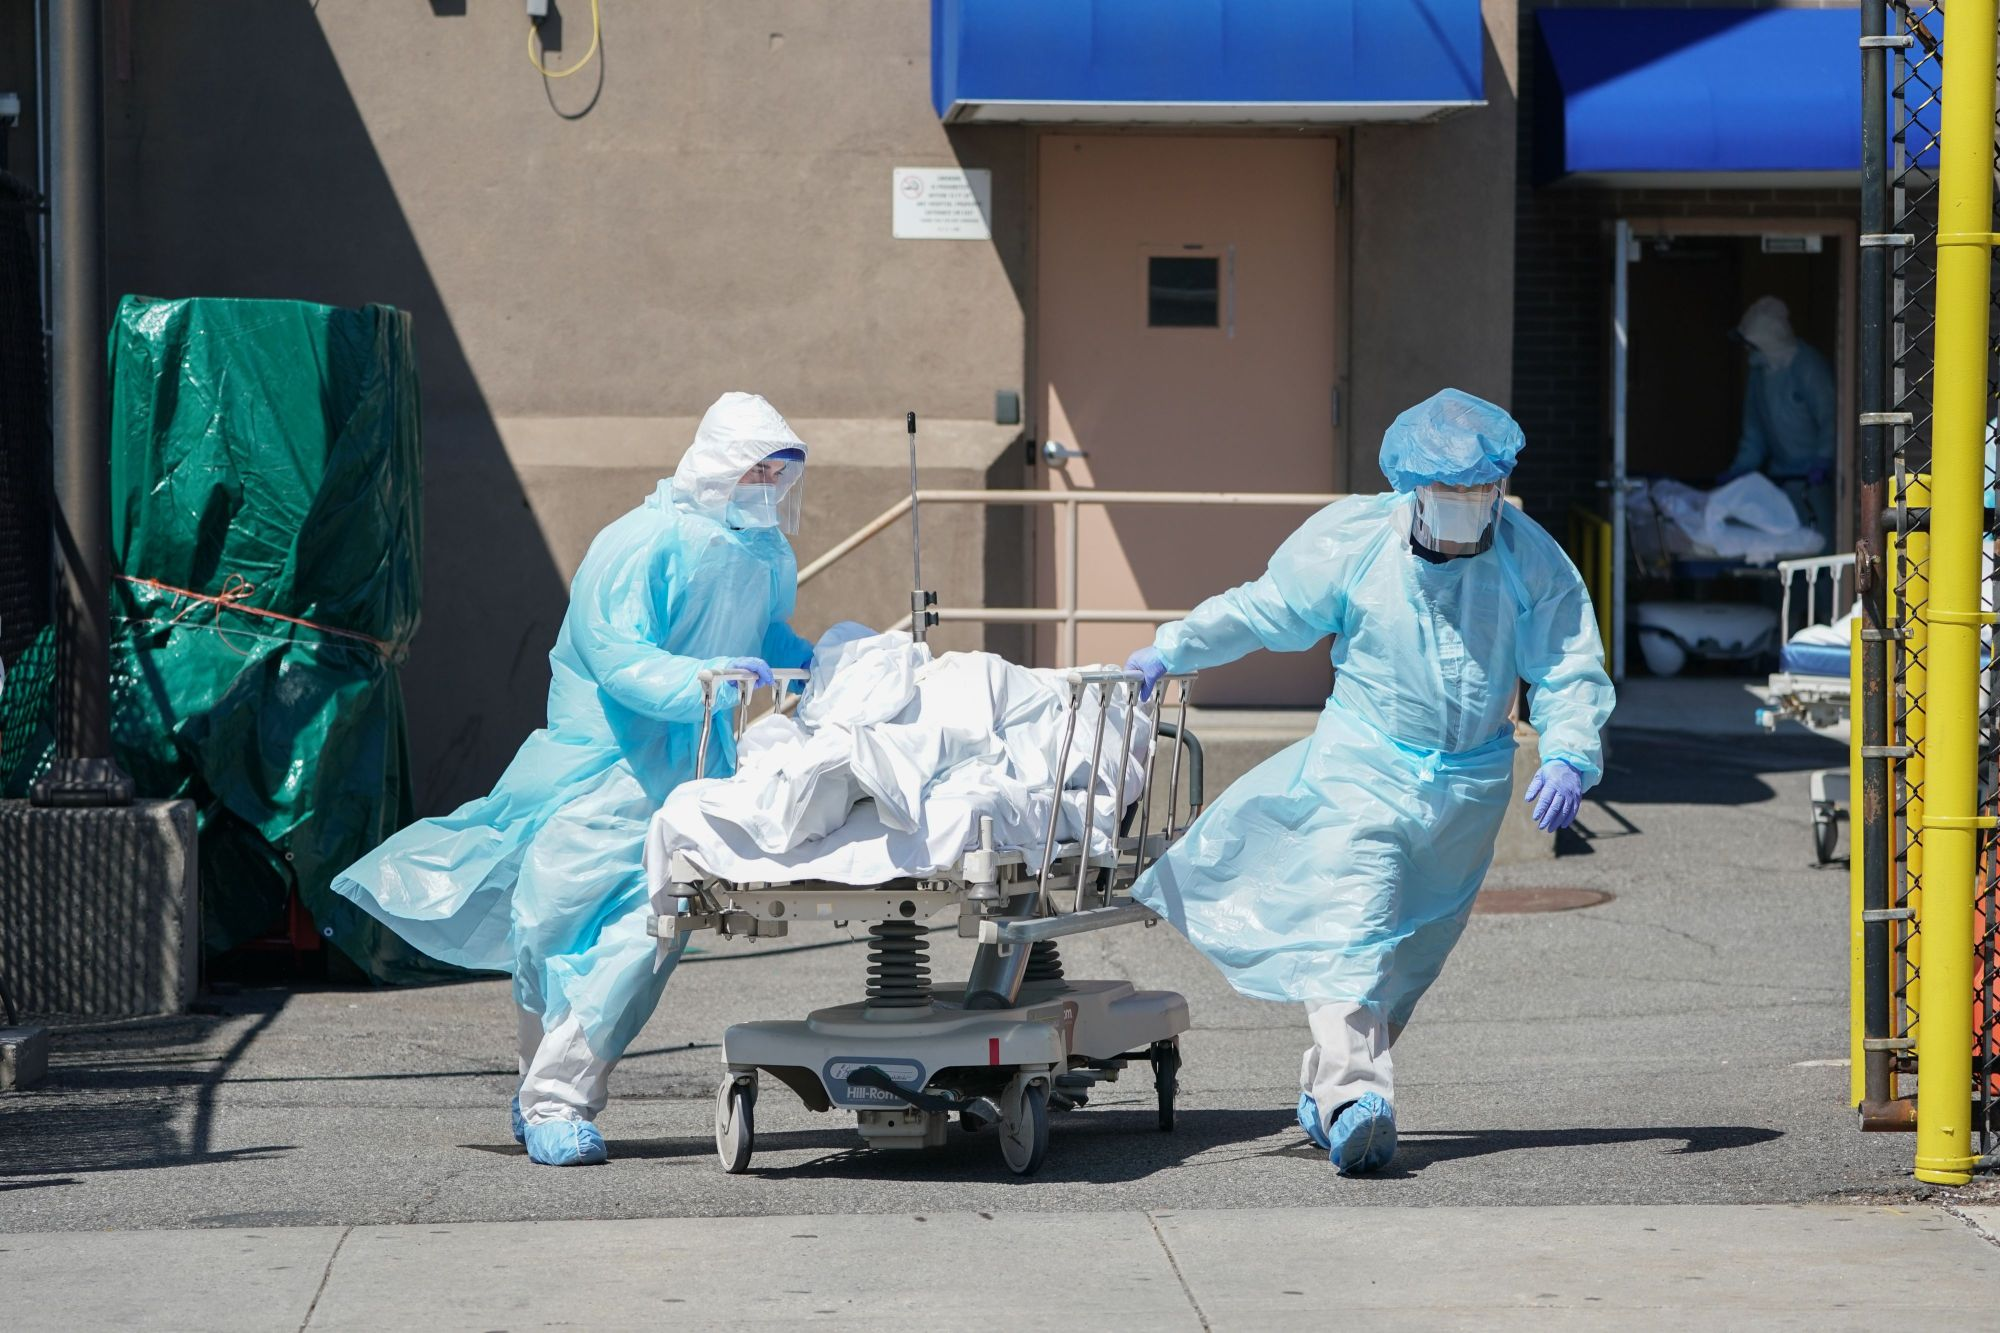 Bodies are moved to a refrigeration truck serving as a temporary morgue at Wyckoff Hospital in the Borough of Brooklyn on April 6, 2020 in New York. (BRYAN R. SMITH/AFP via Getty Images)